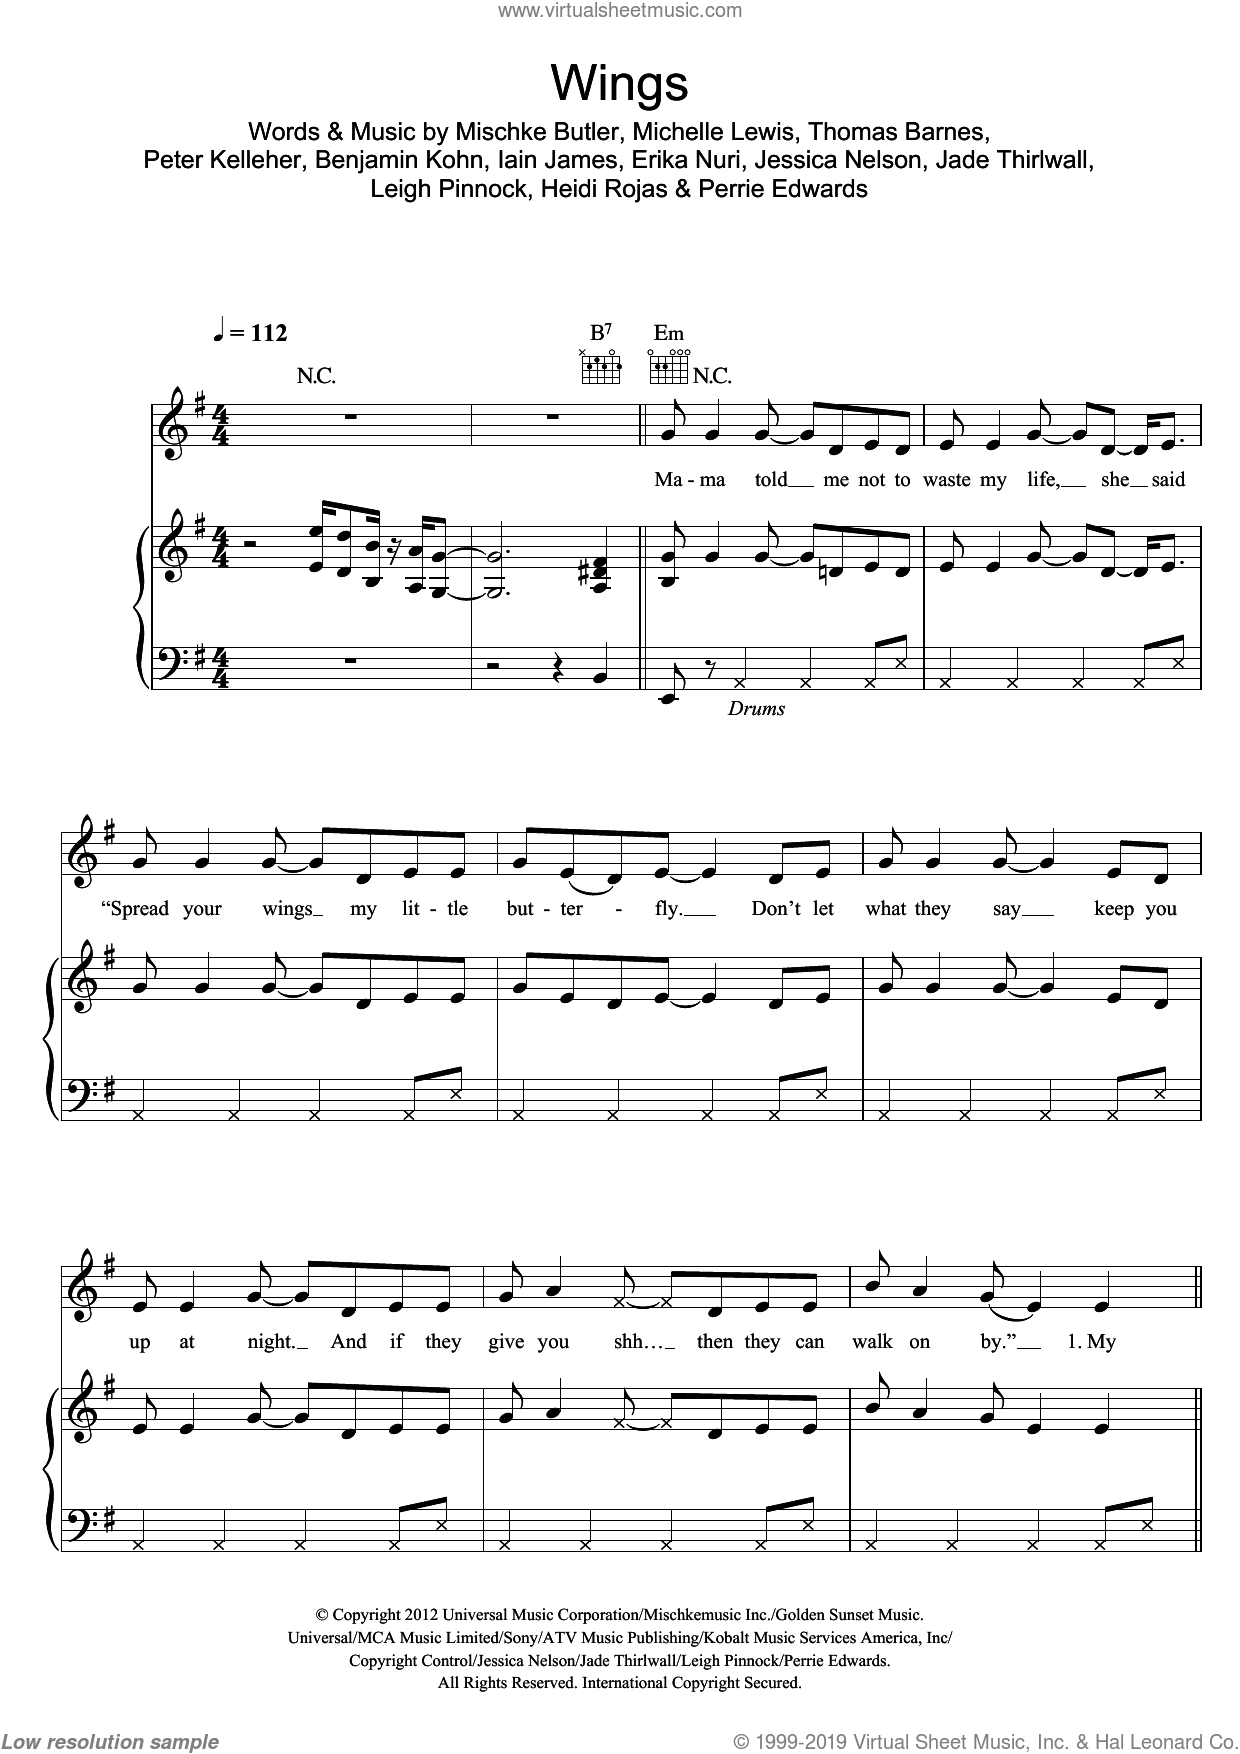 Wings sheet music for voice, piano or guitar by Little Mix, Benjamin Kohn, Erika Nuri, Heidi Rojas, Iain James, Jade Thirlwall, Jessica Nelson, Leigh Pinnock, Michelle Lewis, Mischke Butler, Perrie Edwards, Peter Kelleher and Thomas Barnes, intermediate skill level